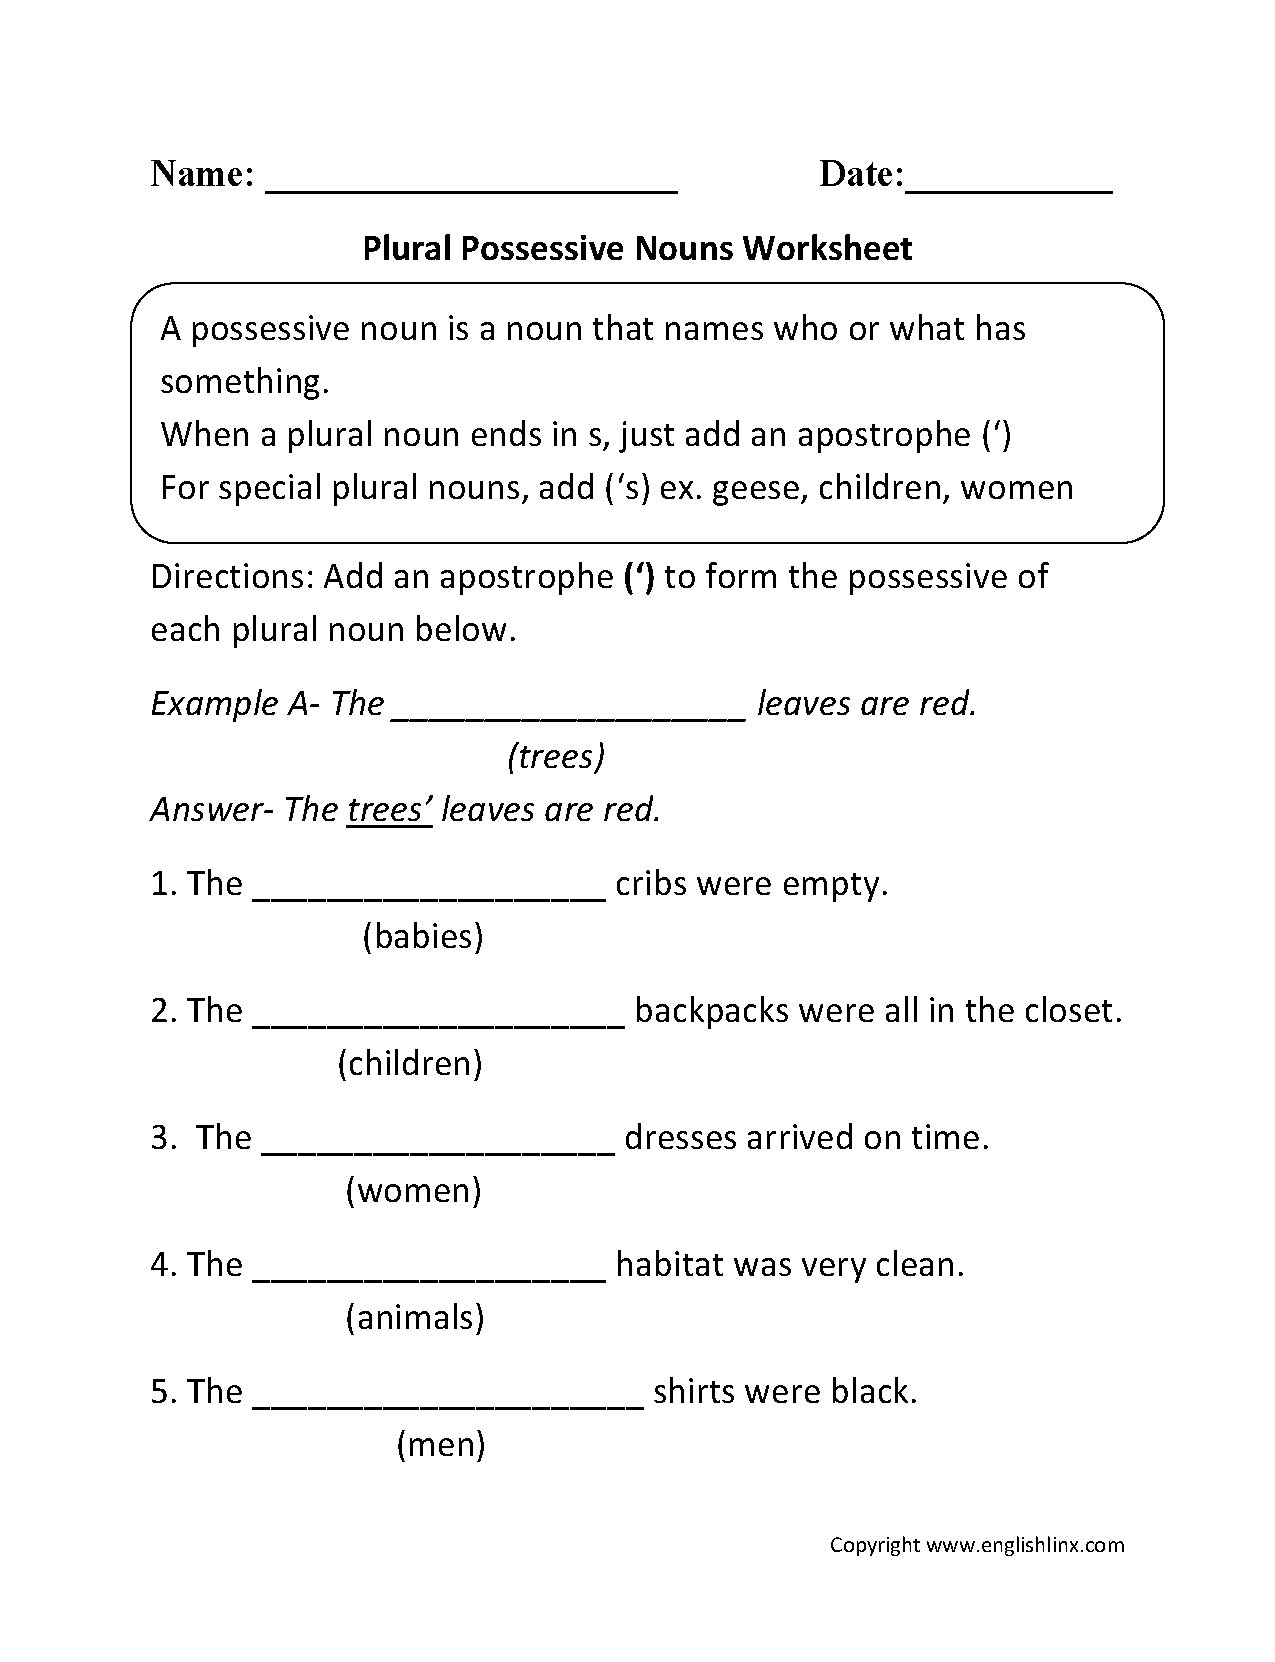 Aldiablosus  Fascinating Nouns Worksheets  Possessive Nouns Worksheets With Exciting Possessive Nouns Worksheets With Lovely First Grade Spanish Worksheets Also St Grade Cause And Effect Worksheets In Addition Reading Tape Measure Worksheet And Elapsed Time Worksheets Free As Well As Pythagorean Theorem Word Problem Worksheet Additionally Segmenting Words Worksheets From Englishlinxcom With Aldiablosus  Exciting Nouns Worksheets  Possessive Nouns Worksheets With Lovely Possessive Nouns Worksheets And Fascinating First Grade Spanish Worksheets Also St Grade Cause And Effect Worksheets In Addition Reading Tape Measure Worksheet From Englishlinxcom